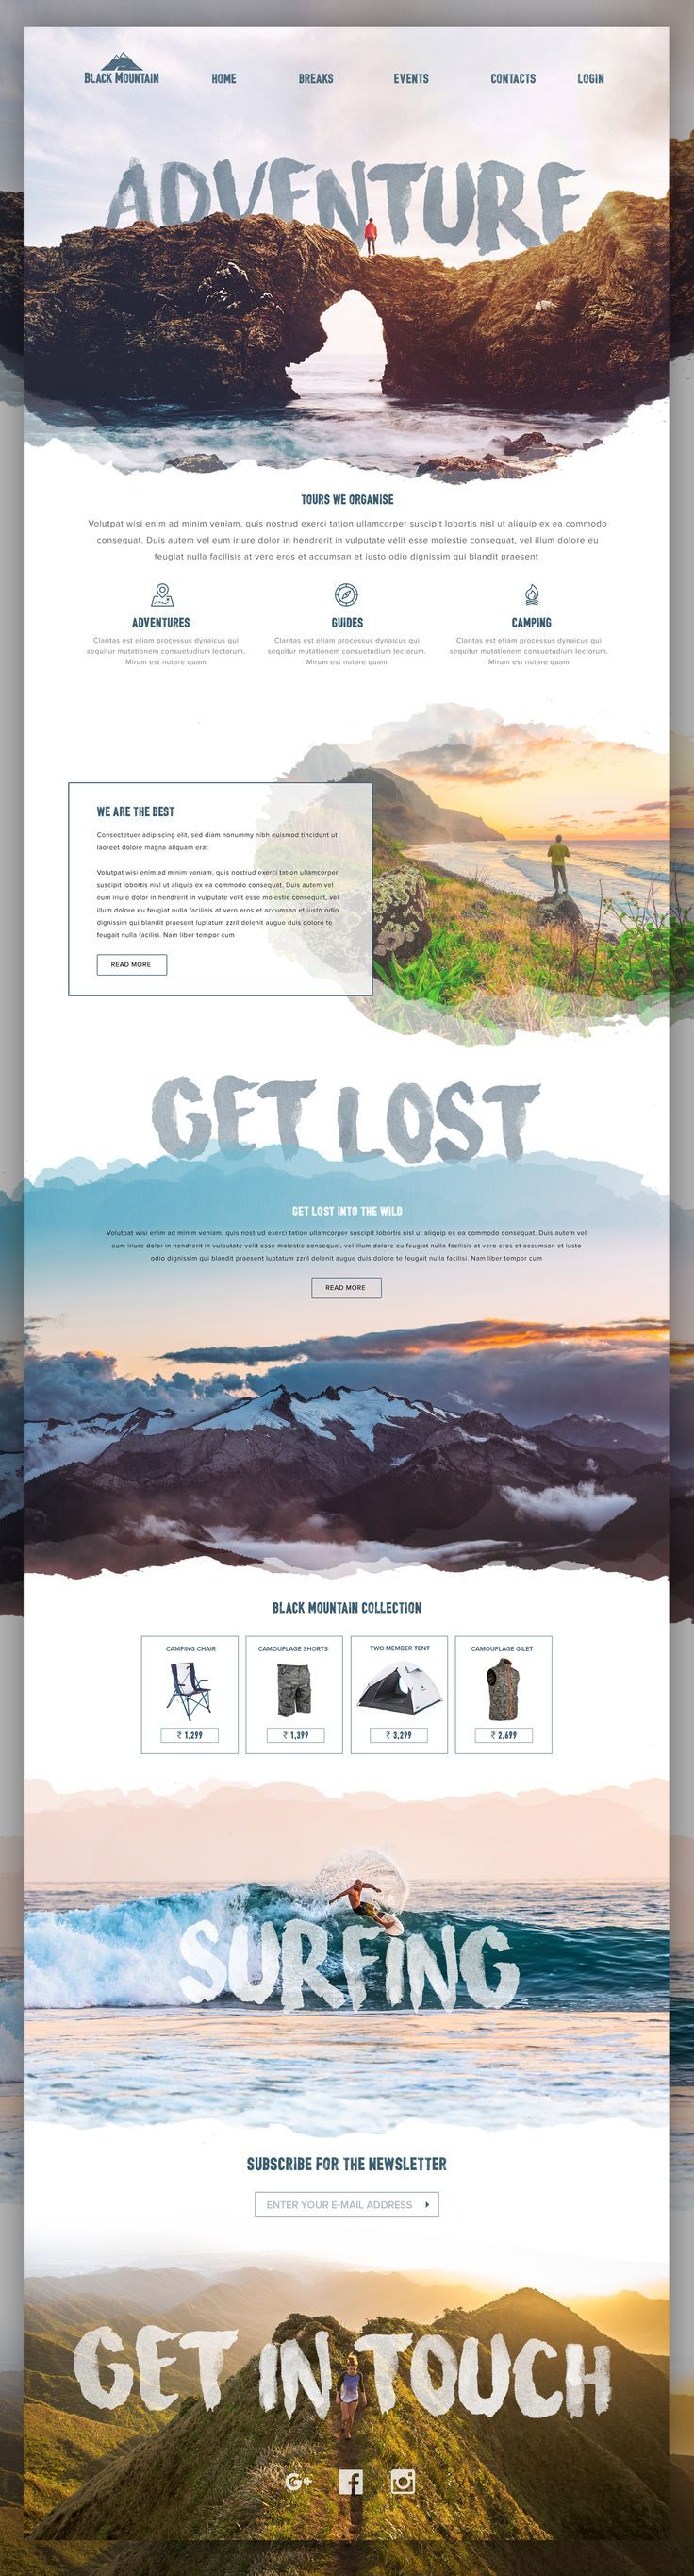 Landingpage for a adventure travel website